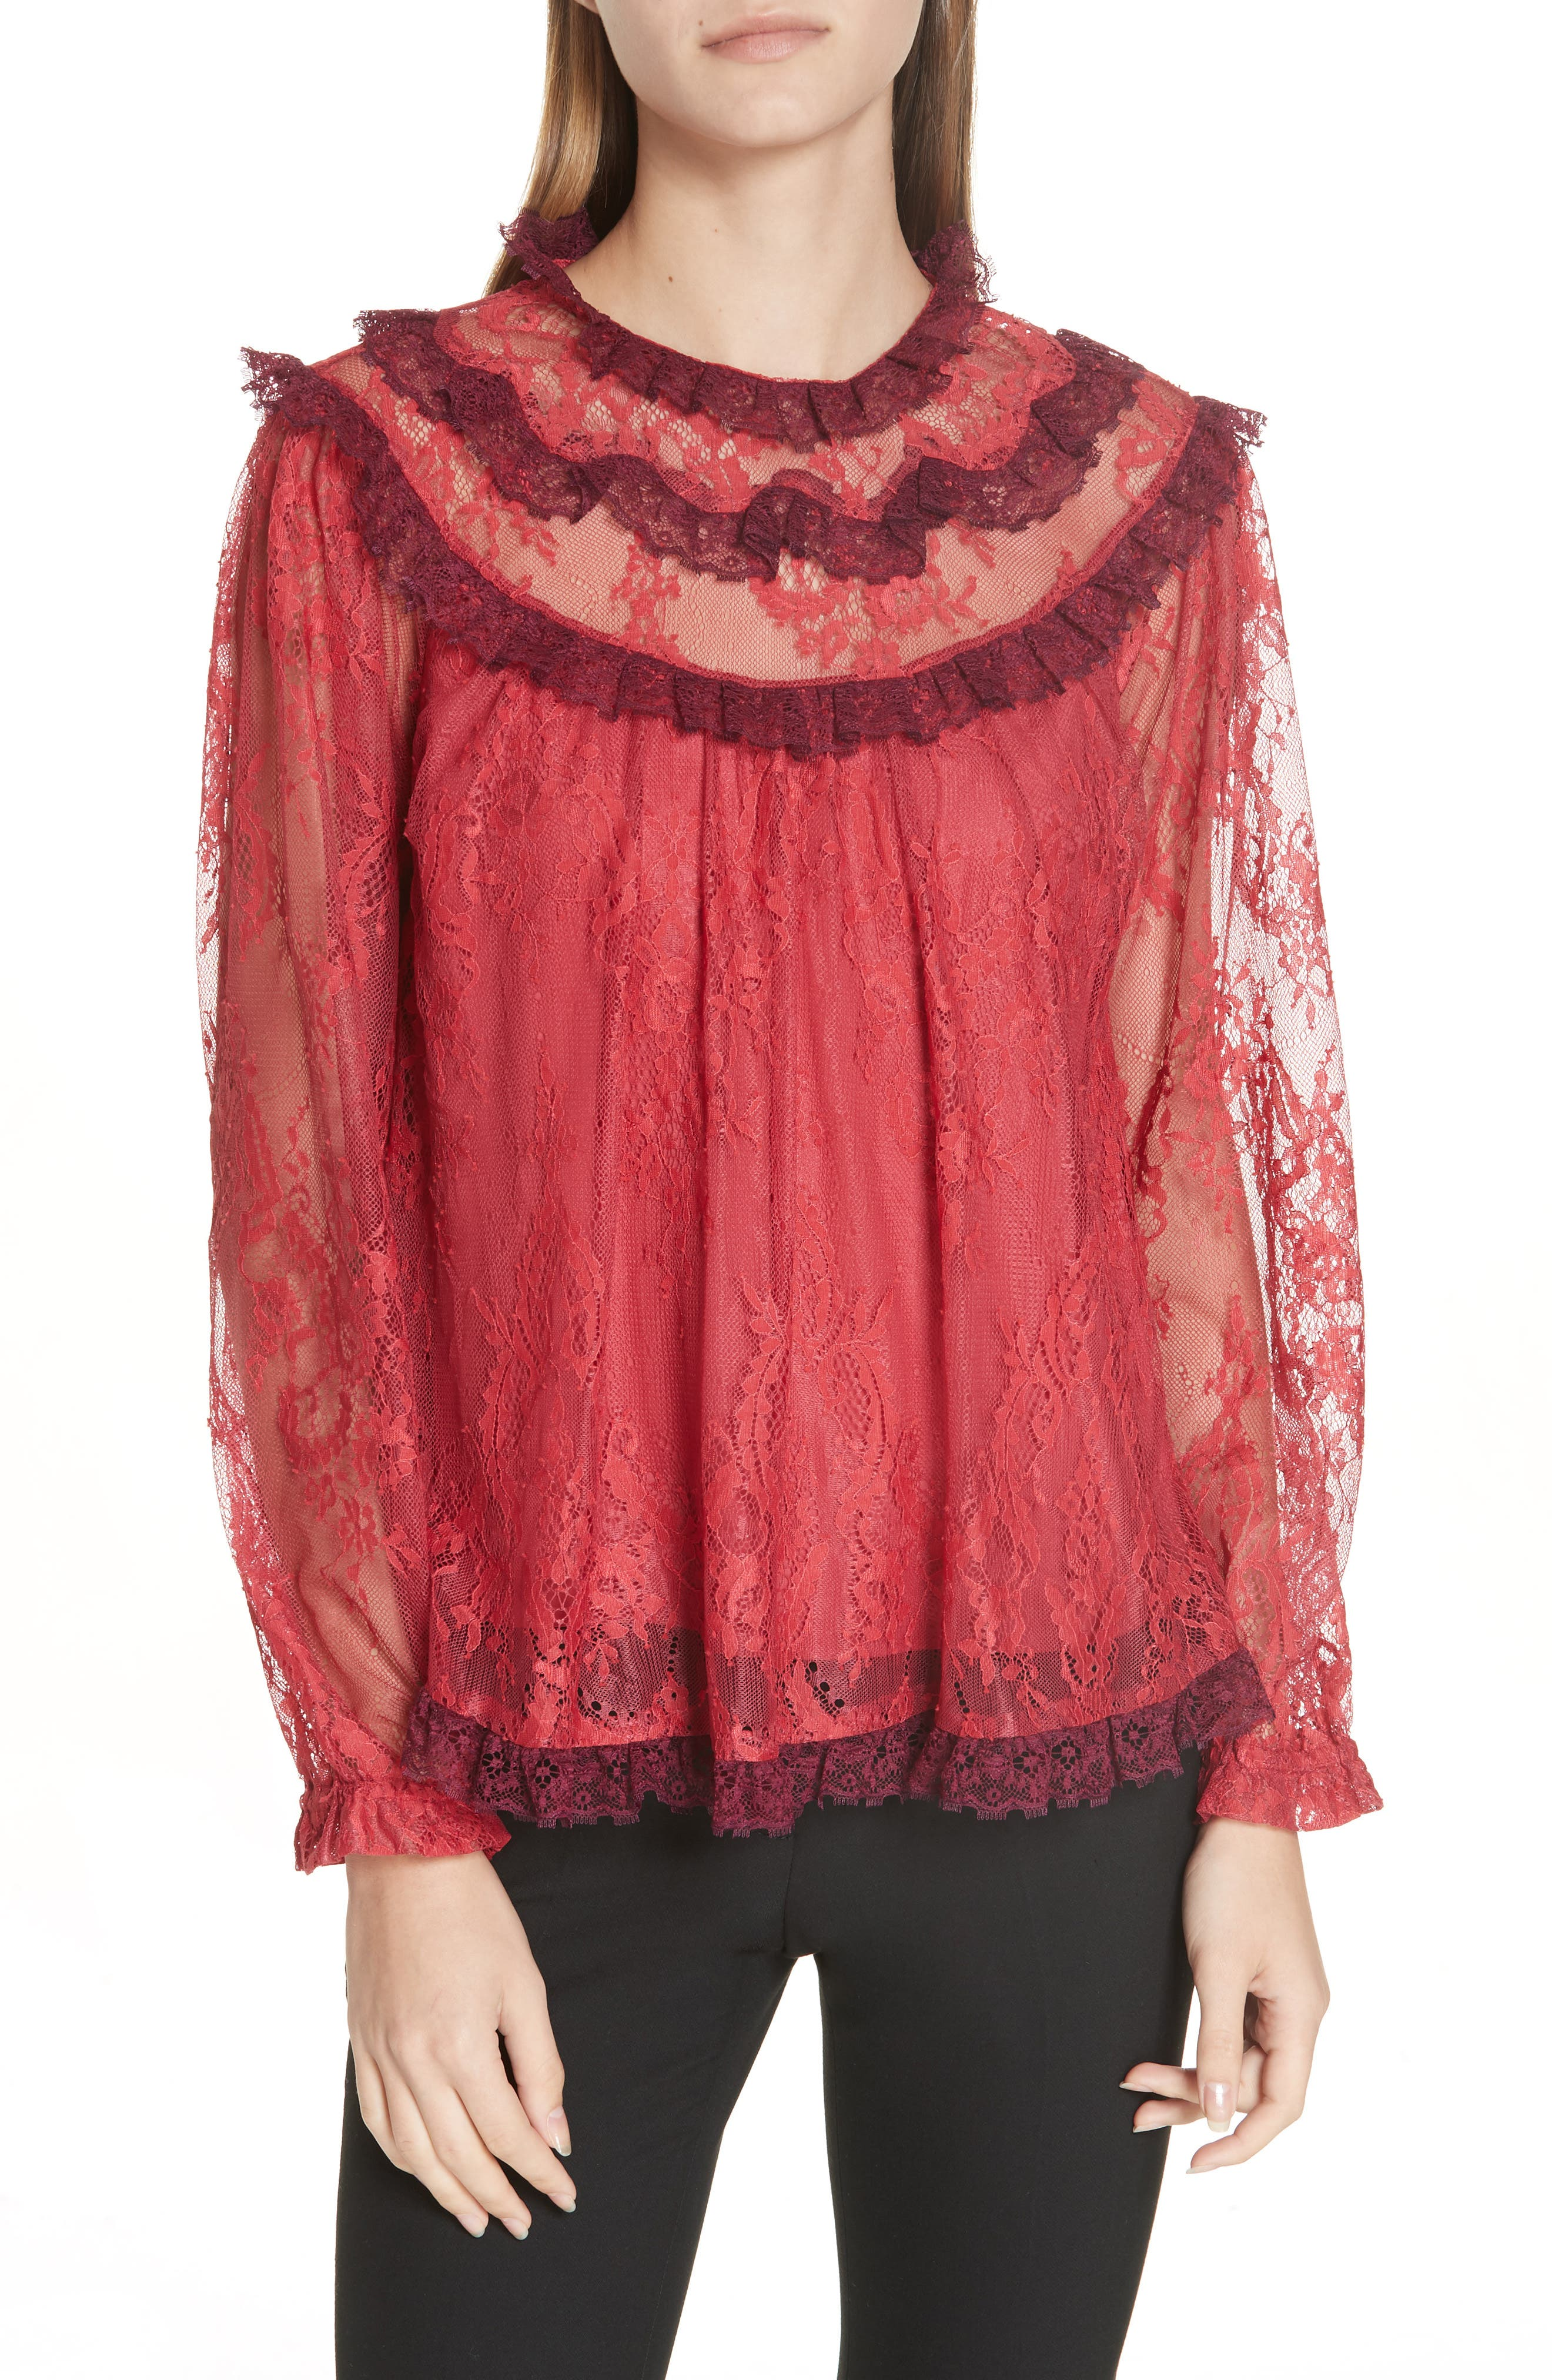 Scallop Frill Lace Top,                             Main thumbnail 1, color,                             DARK CHERRY